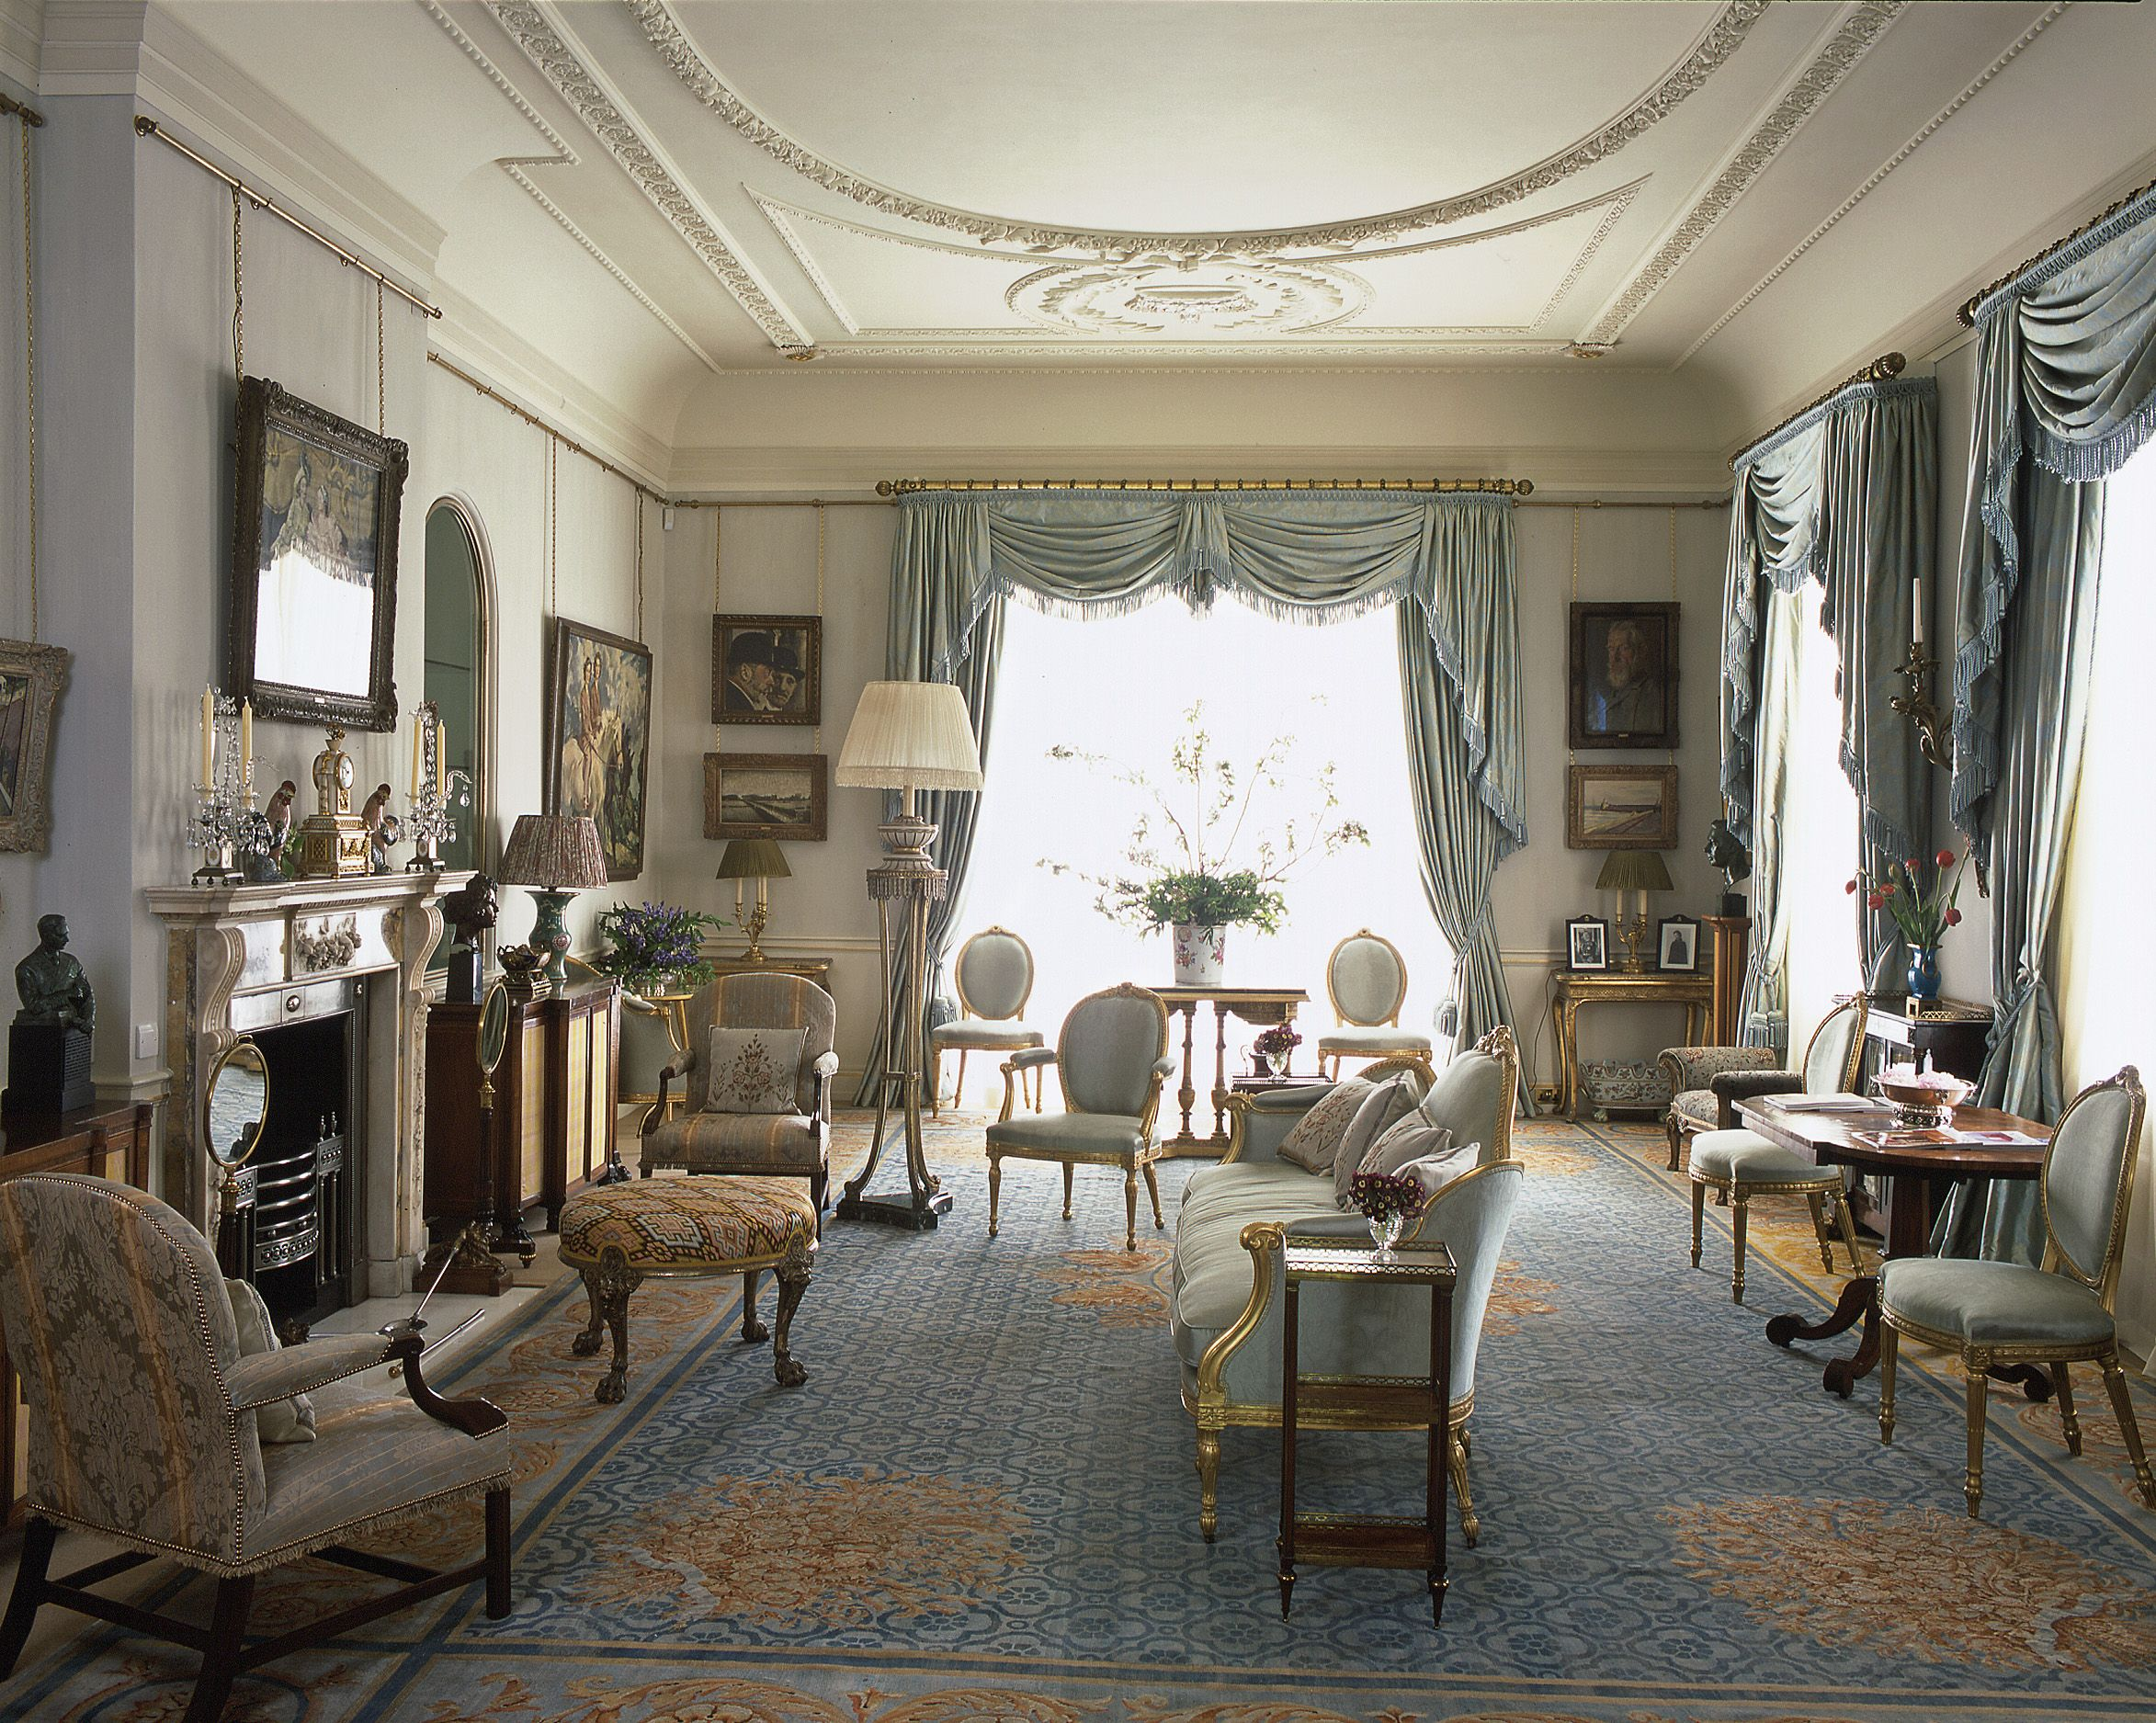 morning room decorating ideas 50 best morning room ideas images on pictures of clarence house london house plans and ideas